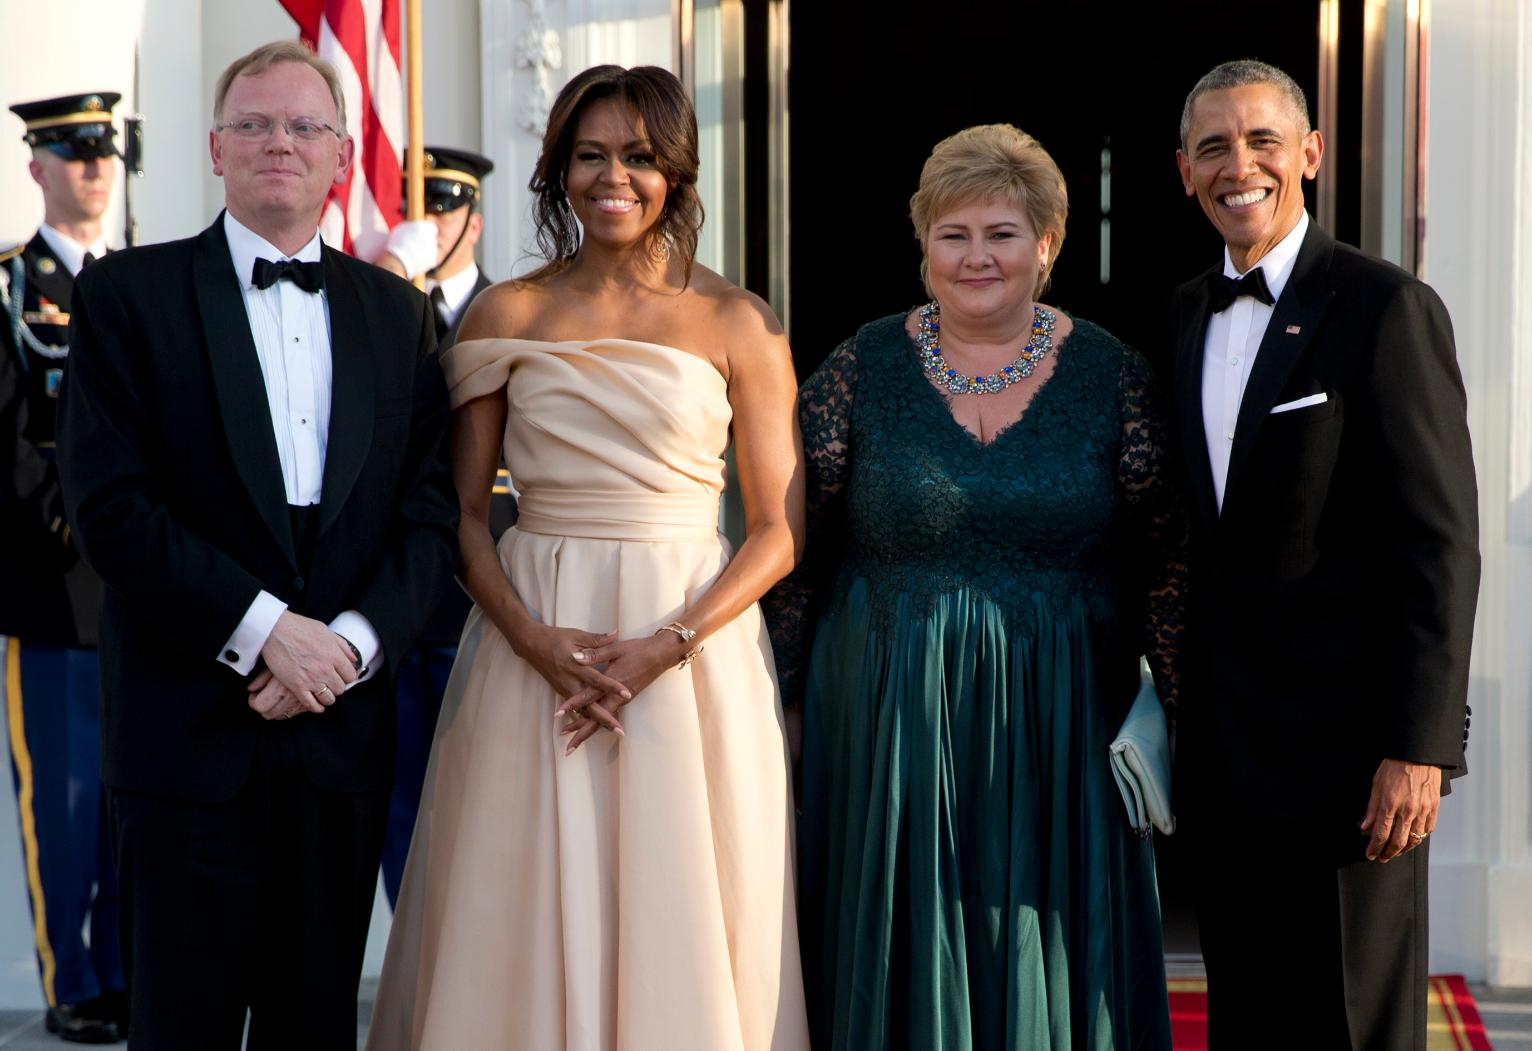 Obamas Welcome Leaders Celebrities To Nordic State Dinner